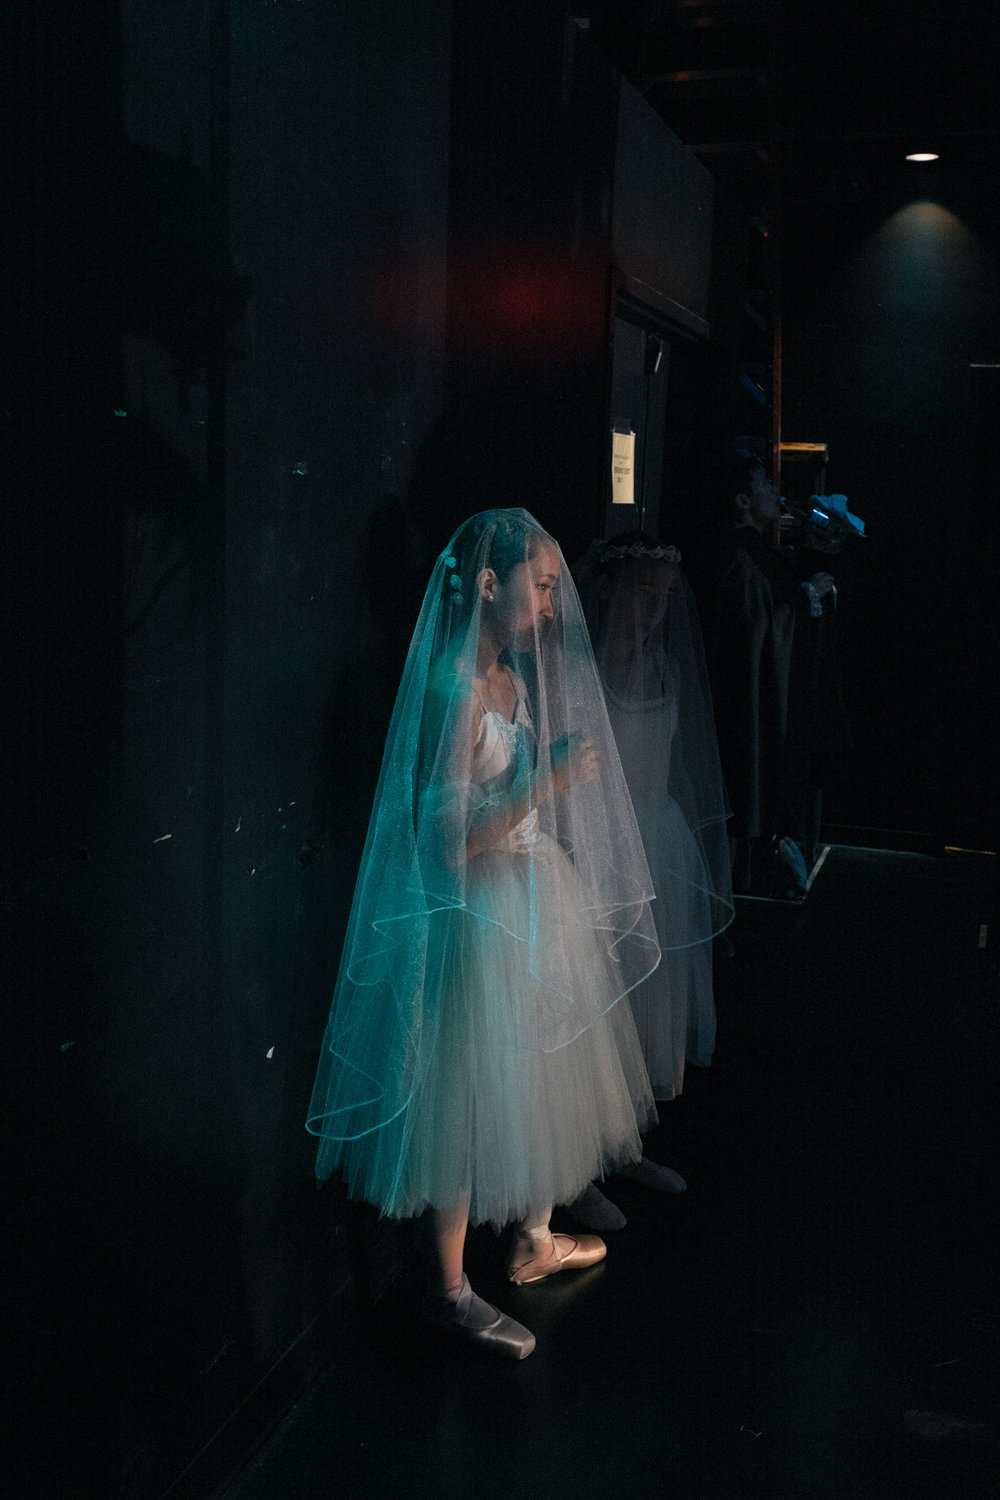 Giselle - Go behind the scenes of our summer performance of Giselle